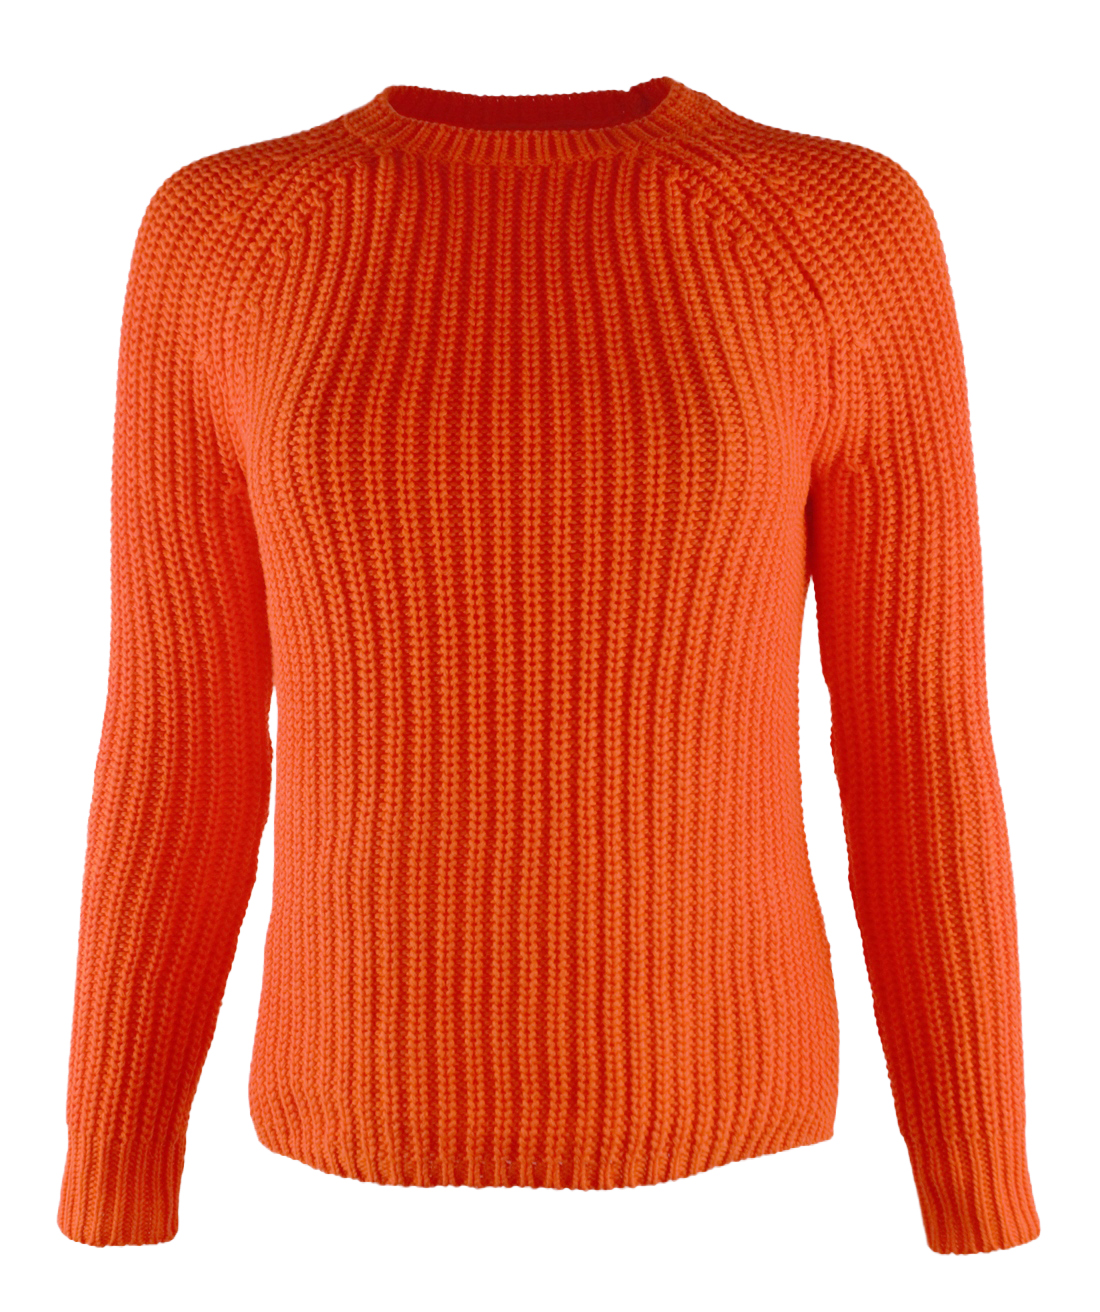 Shop for Women's Petite Sweaters at inerloadsr5s.gq Eligible for free shipping and free returns.